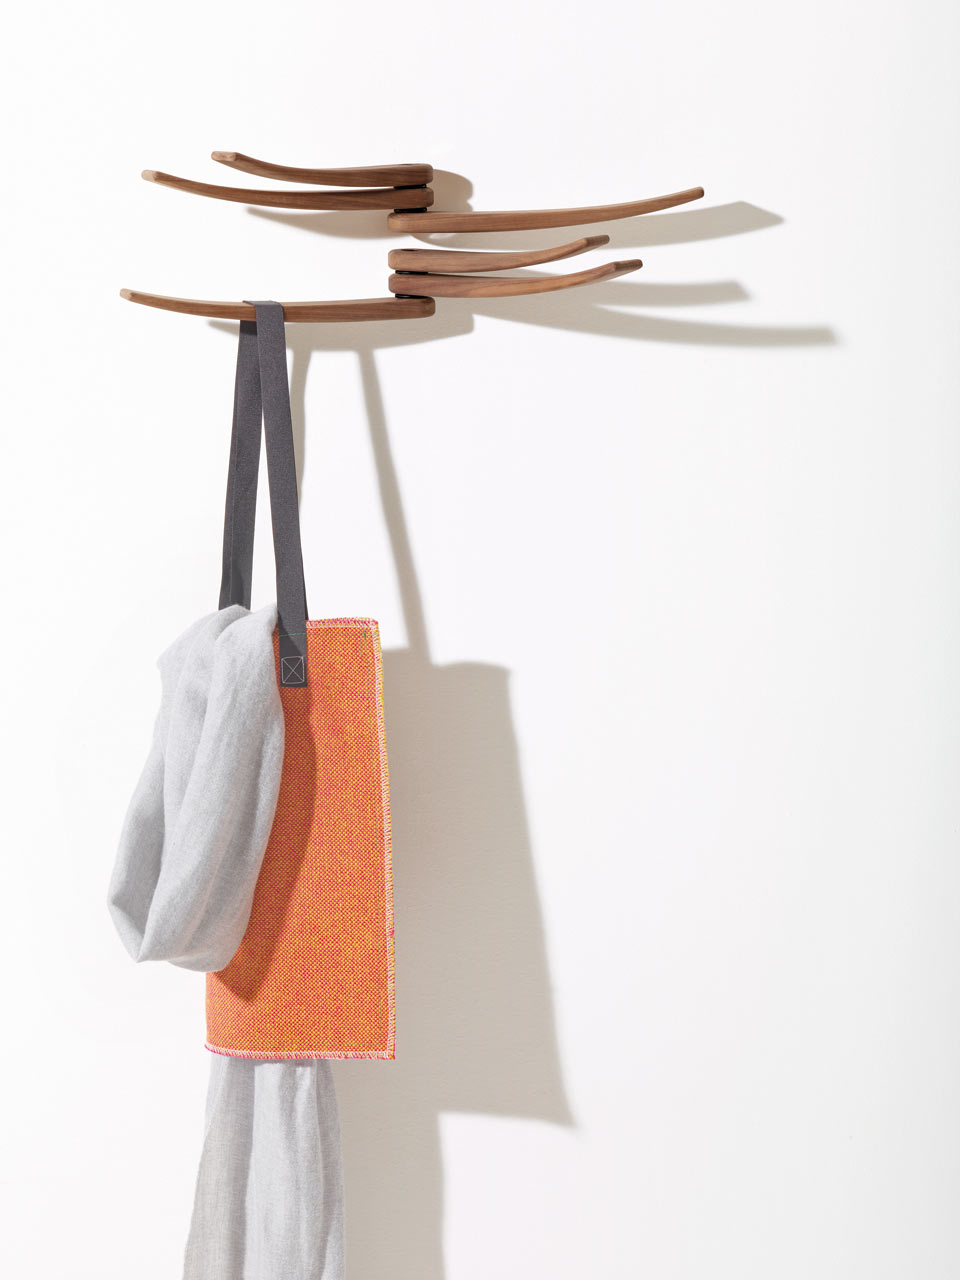 Wing coatrack by Lievore Altherr Molina